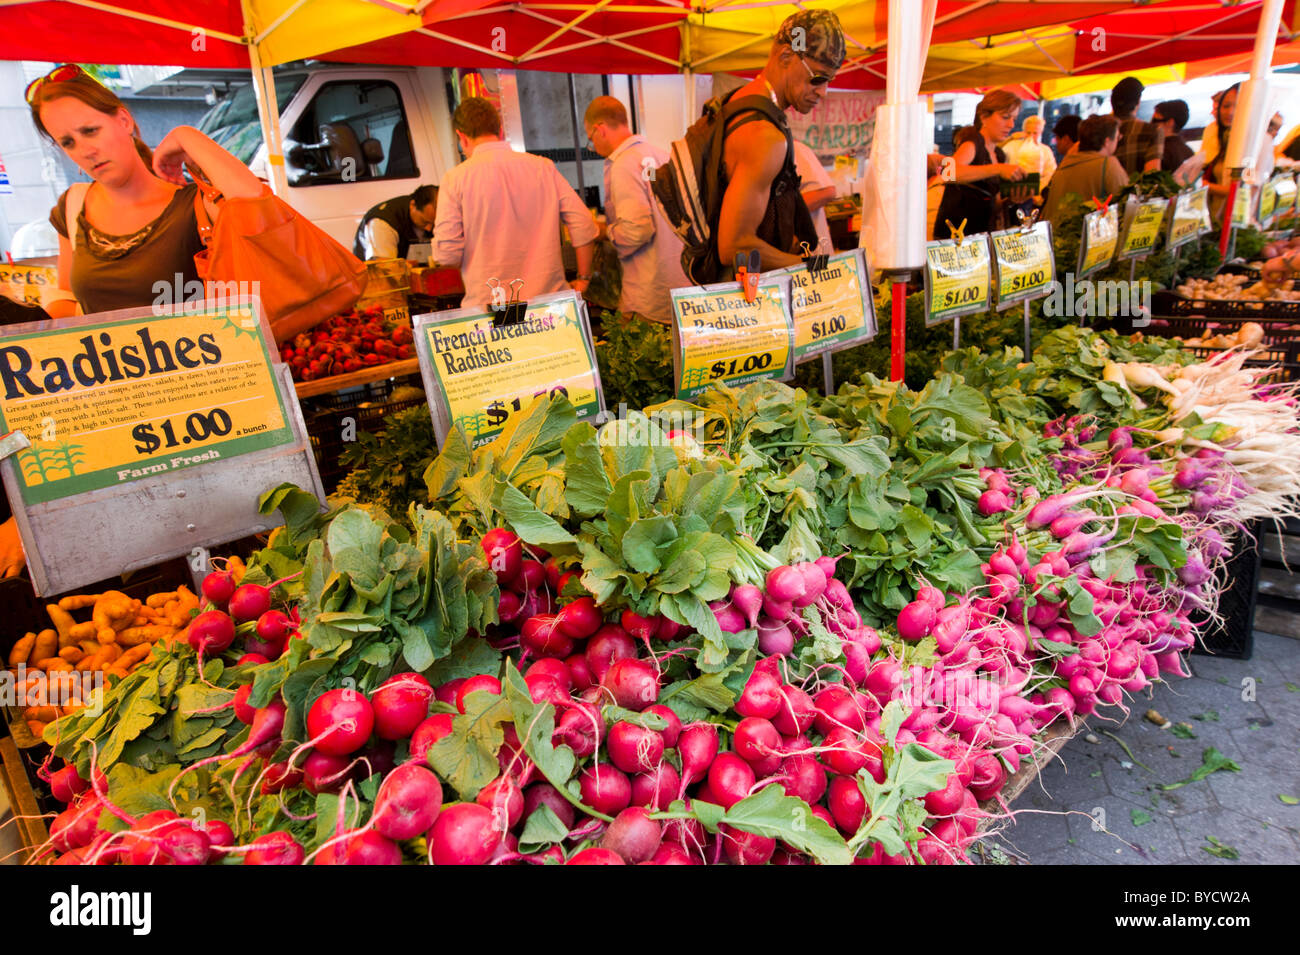 Fruit and vegetable market at the Greenmarket in Union Square, New York City, USA - Stock Image